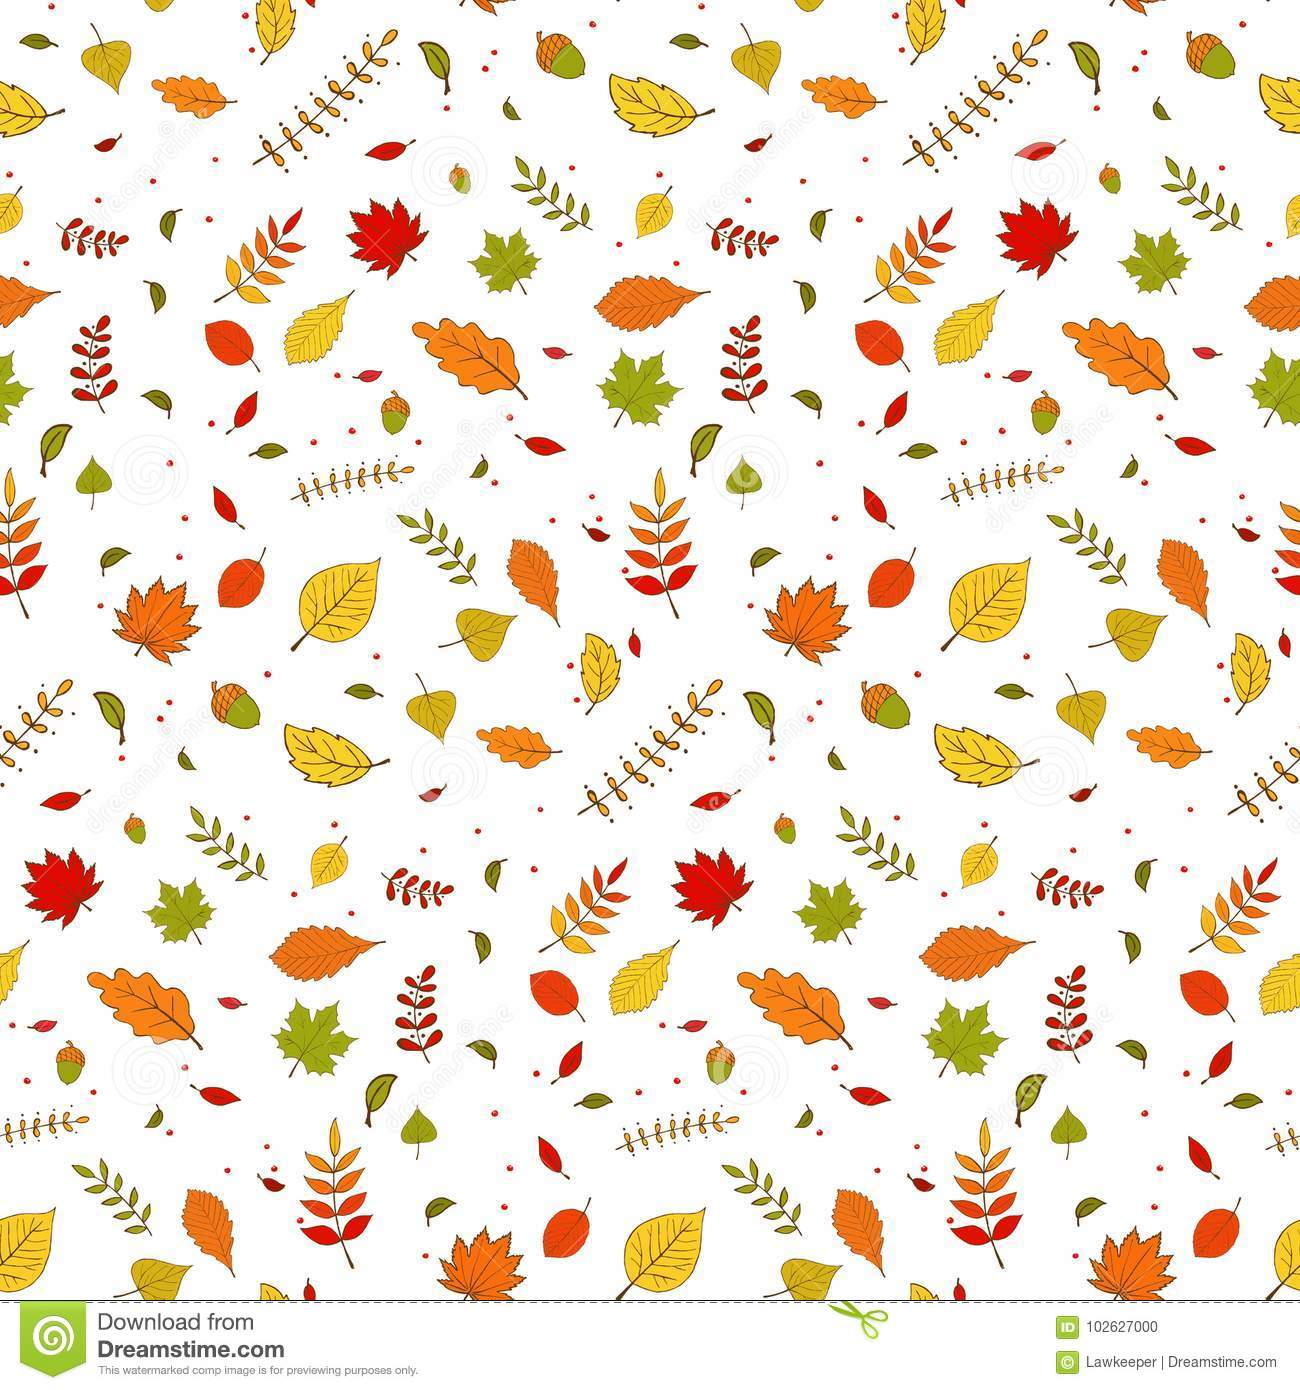 Seamless Falling Colorful Autumn Leaves Wallpaper Pattern